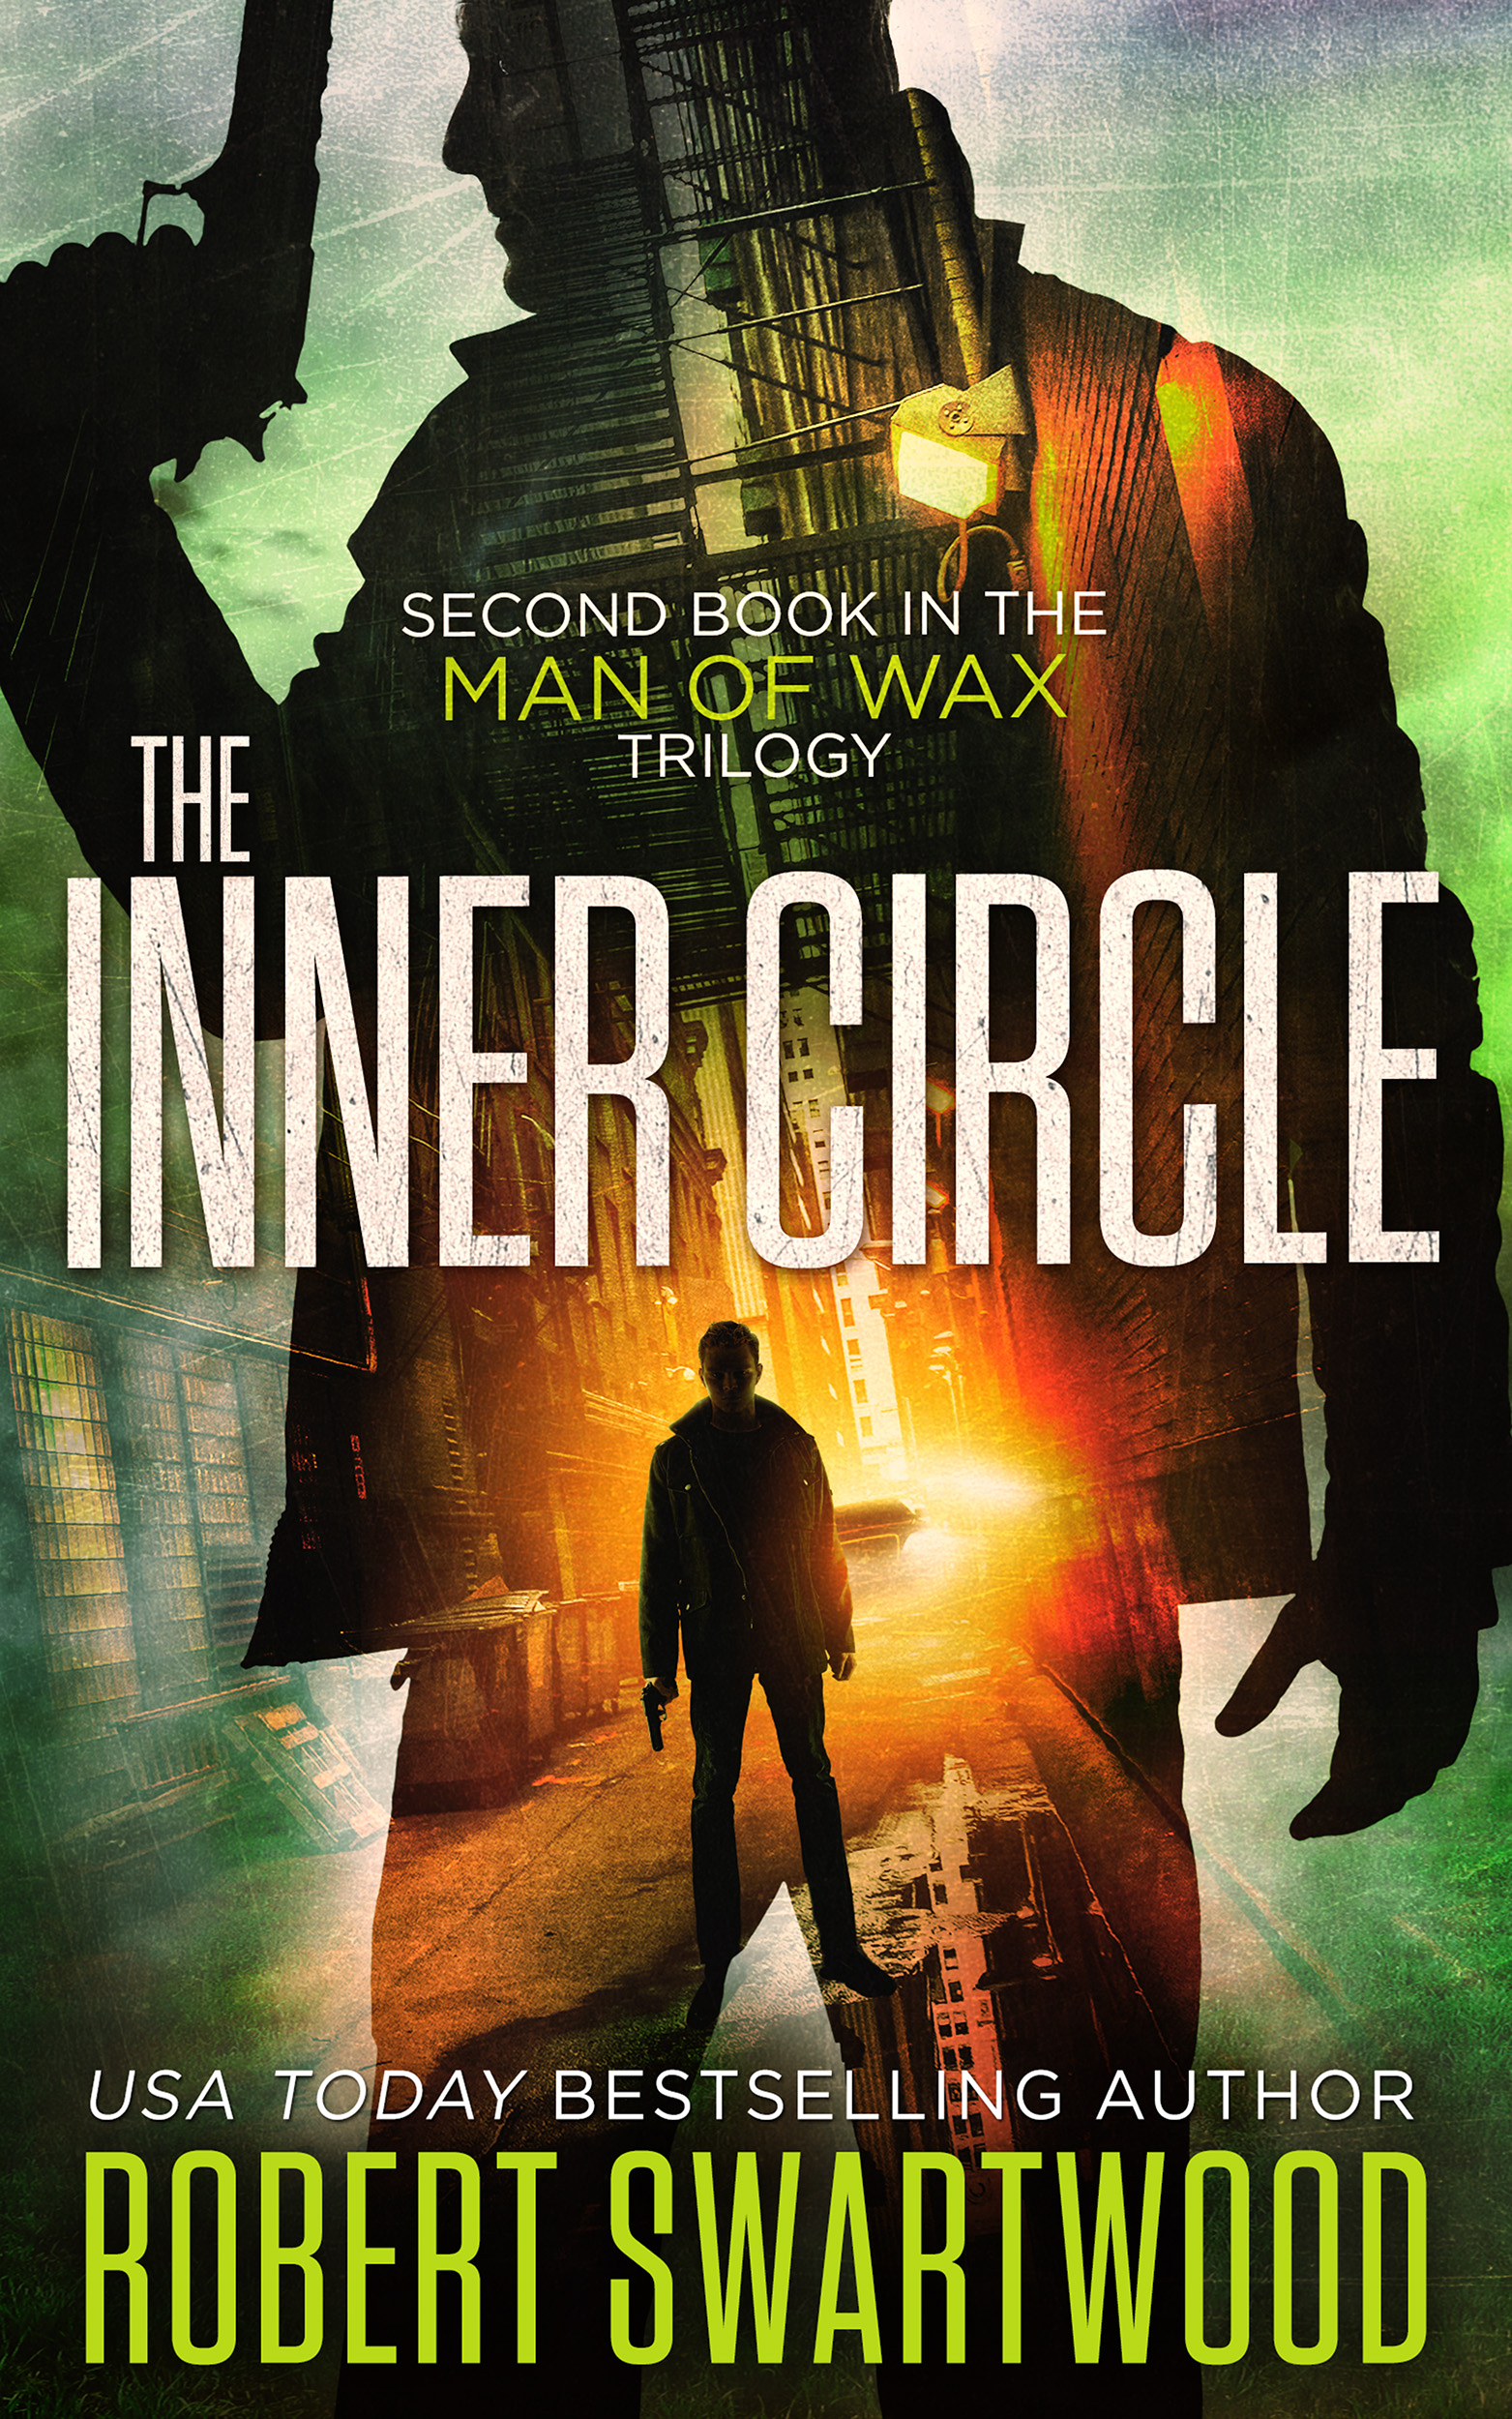 The Inner Circle - Ebook Small.jpg